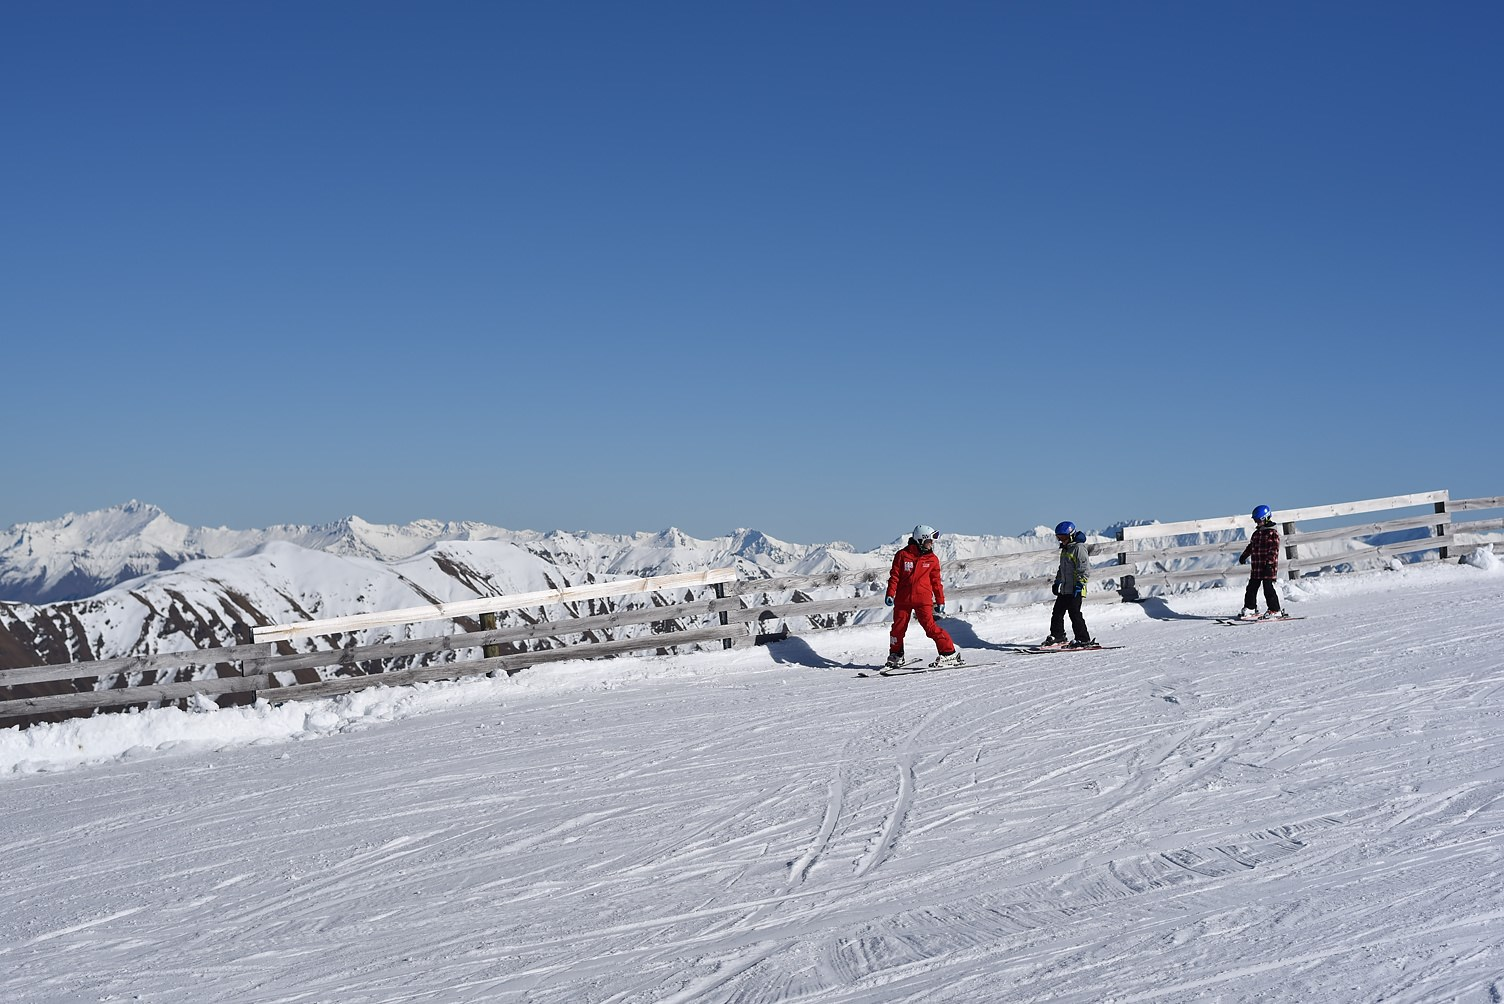 cardrona-ski lessons- how to ski-ski hire queenstown